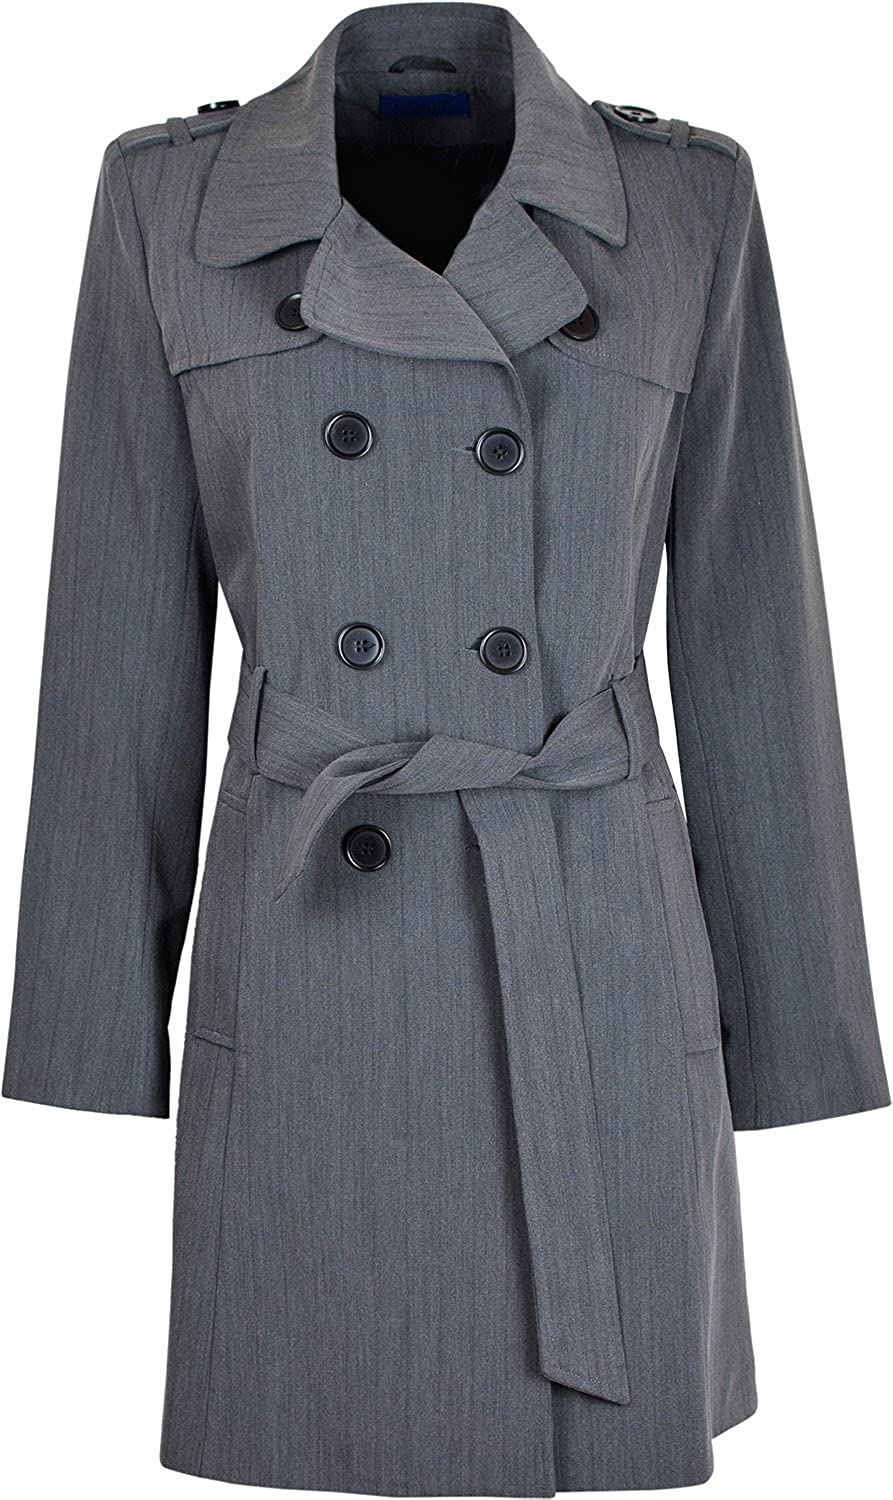 Damen Doppelreihiger Long Coat Fit und Flare Damen Winter Mantel mit Innenfutter